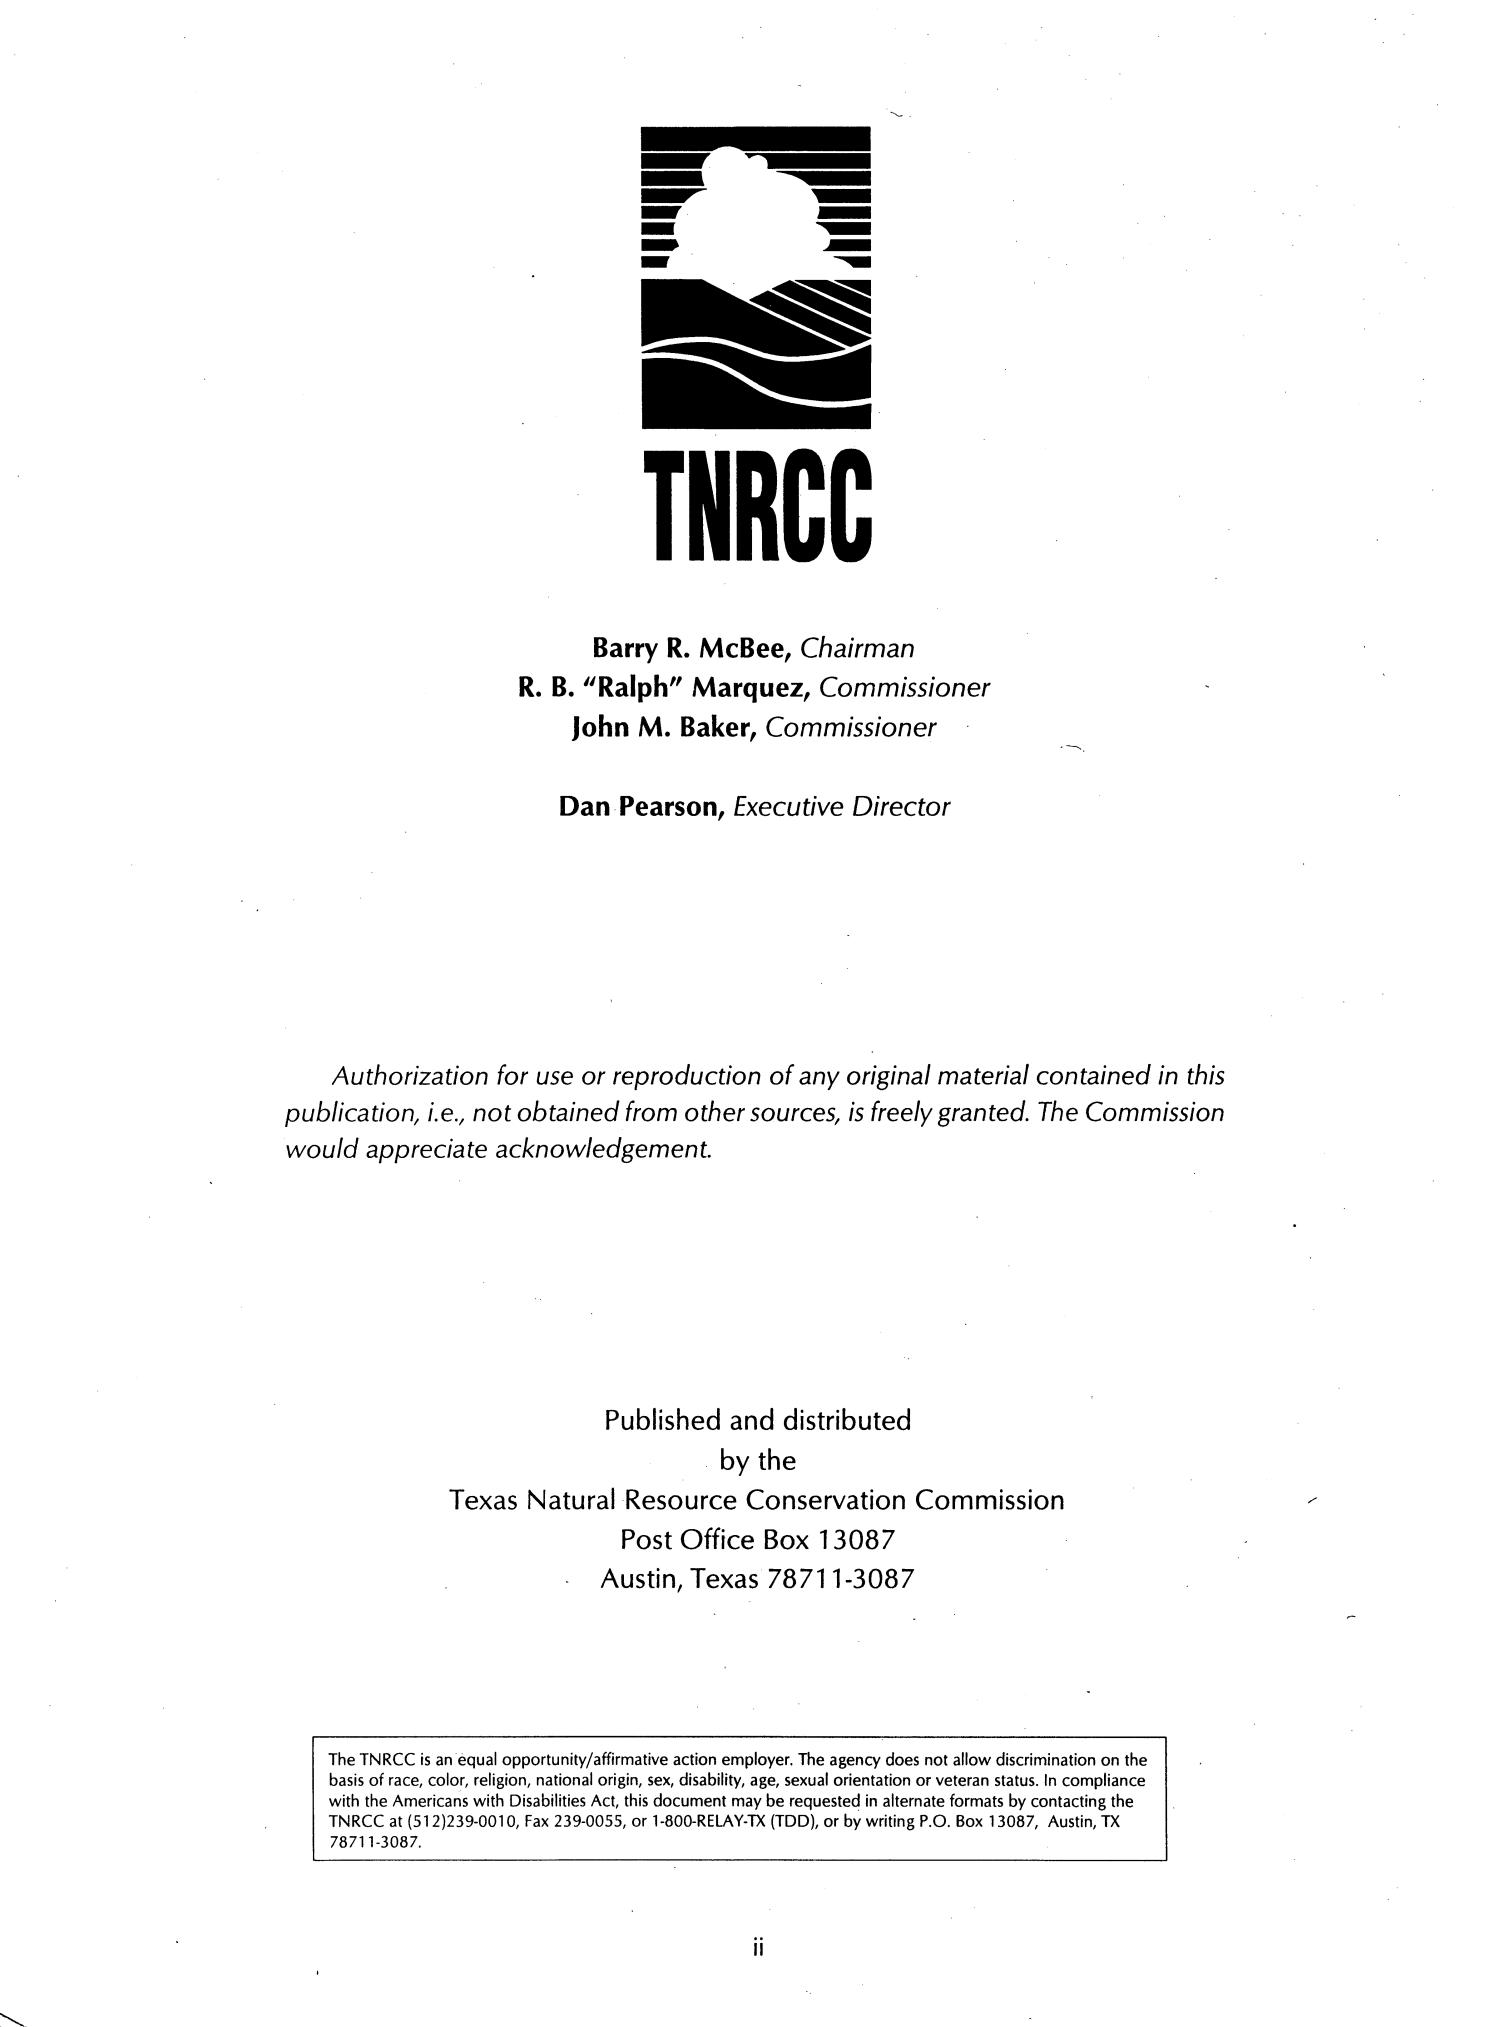 Community Air Toxics Monitoring Network: January - December 1995                                                                                                      II